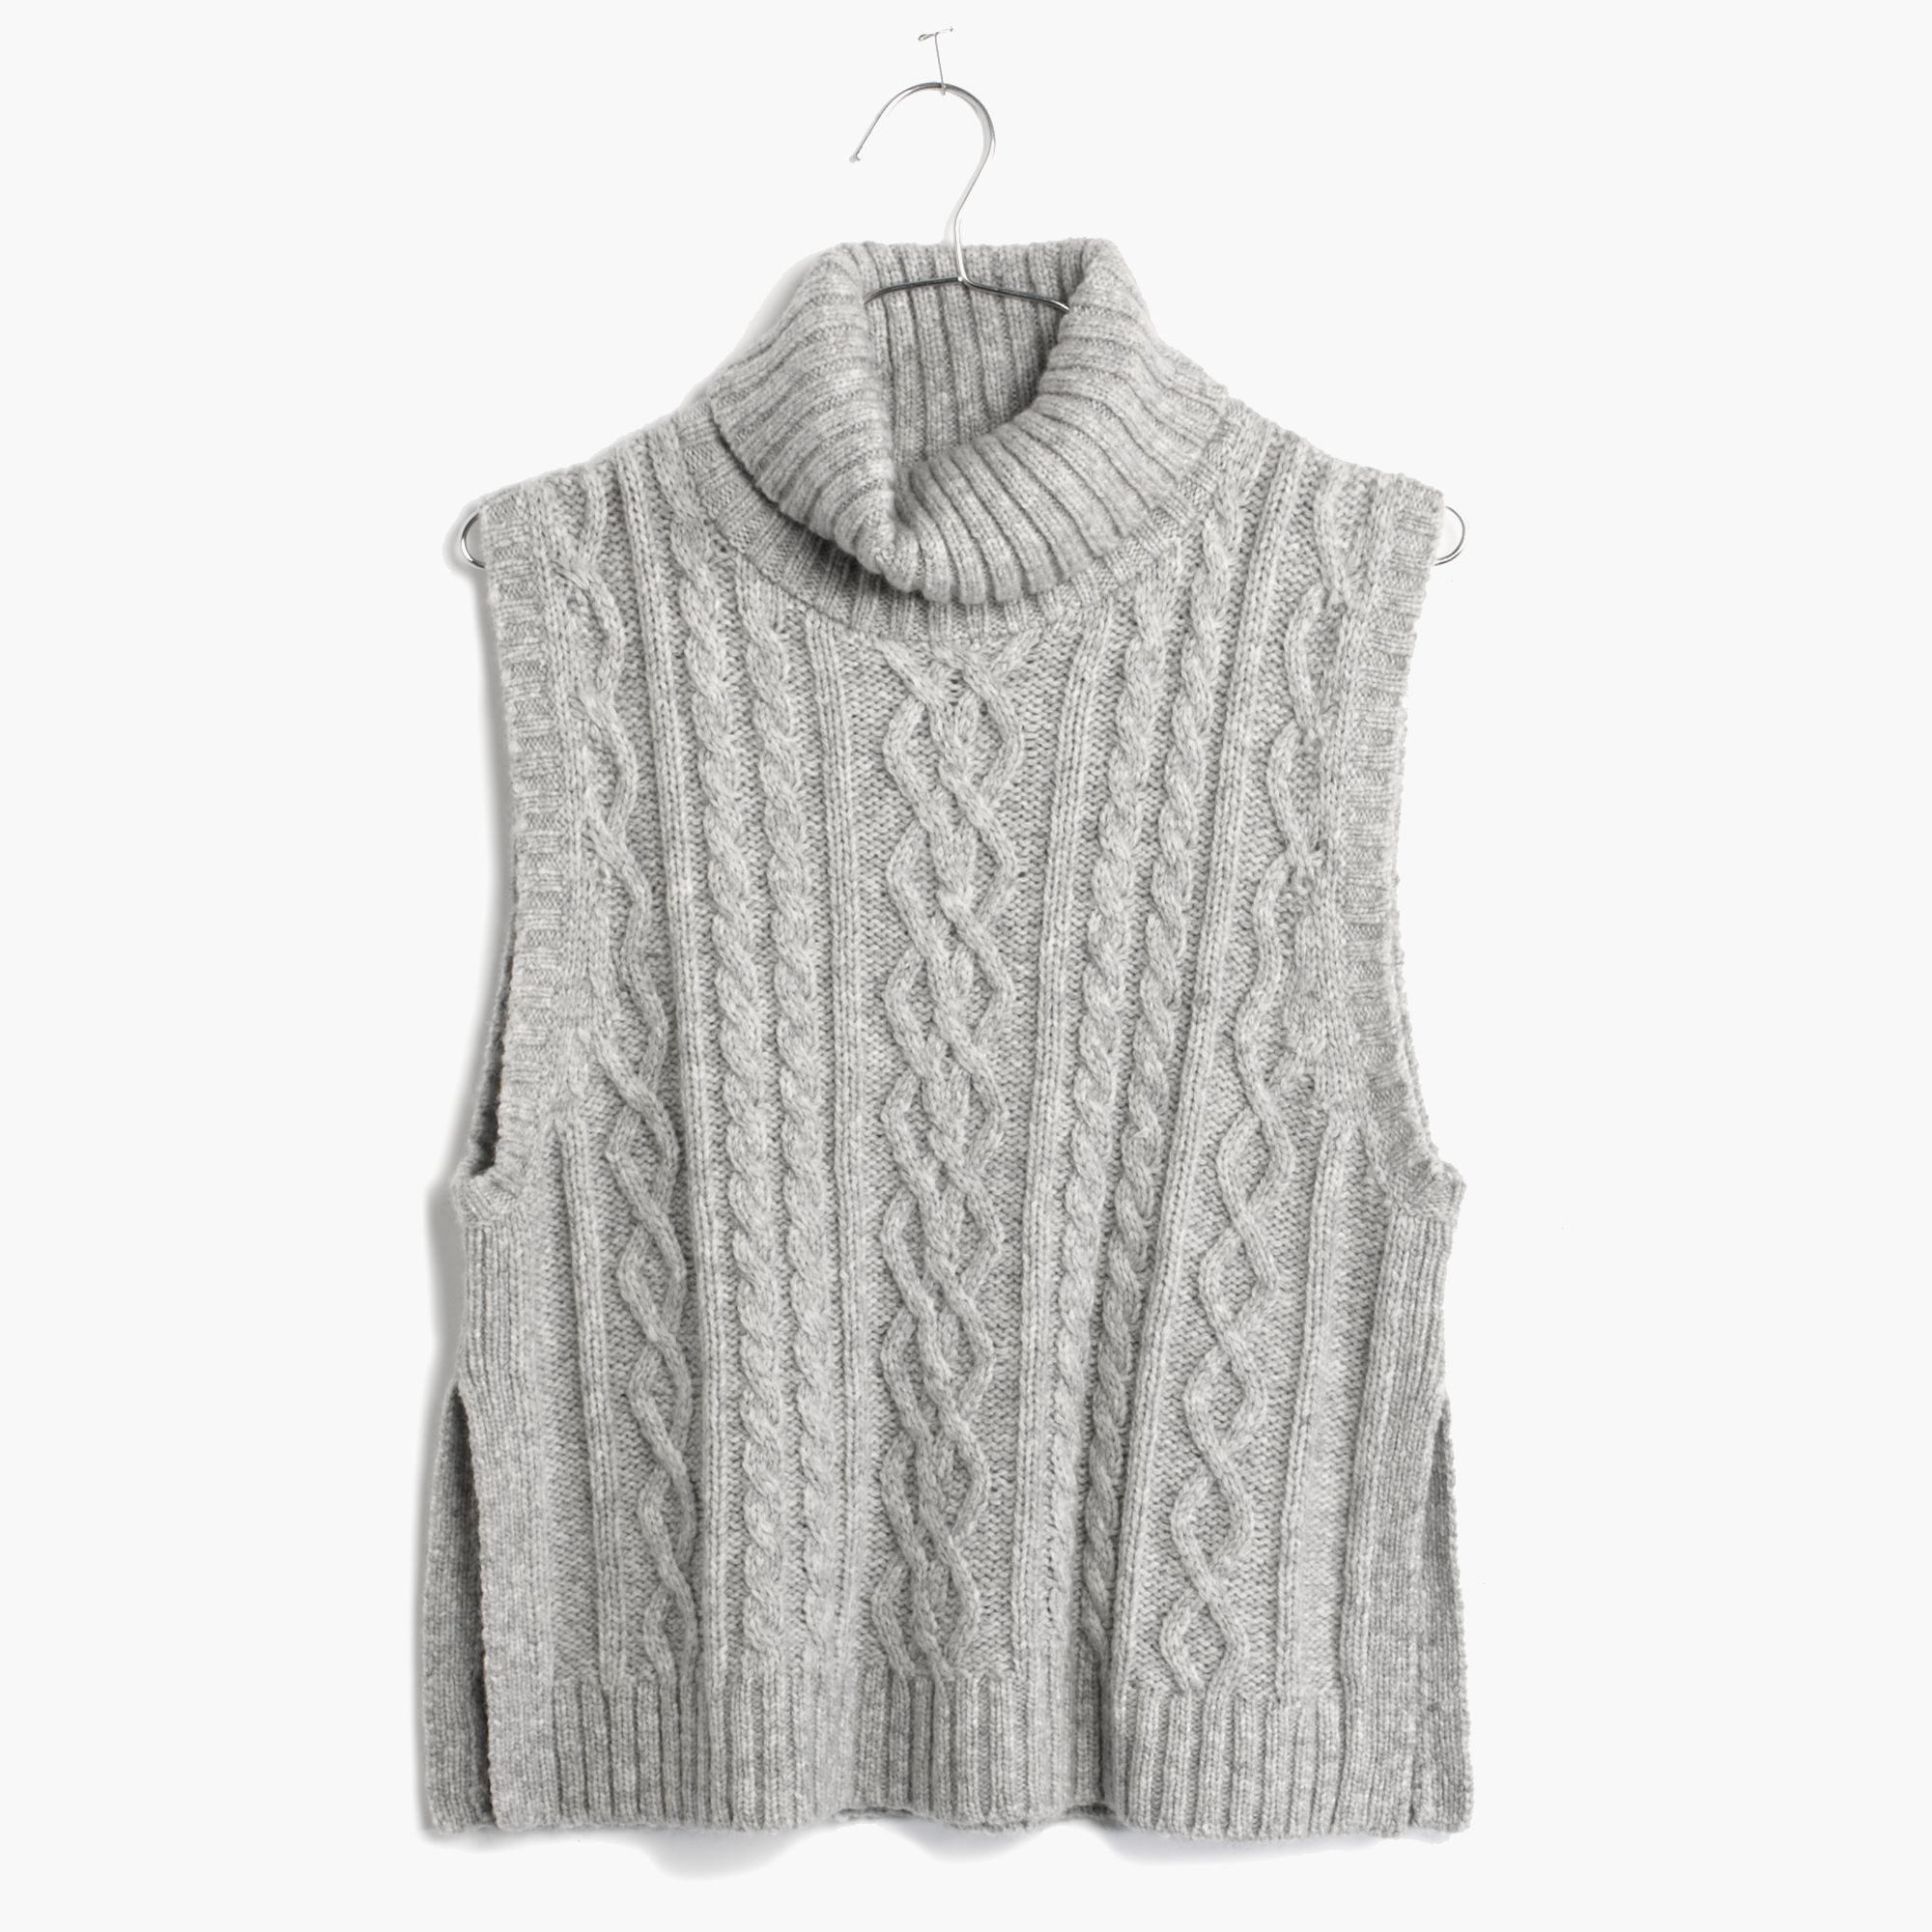 Madewell Turtleneck Sweater-Vest in Gray | Lyst